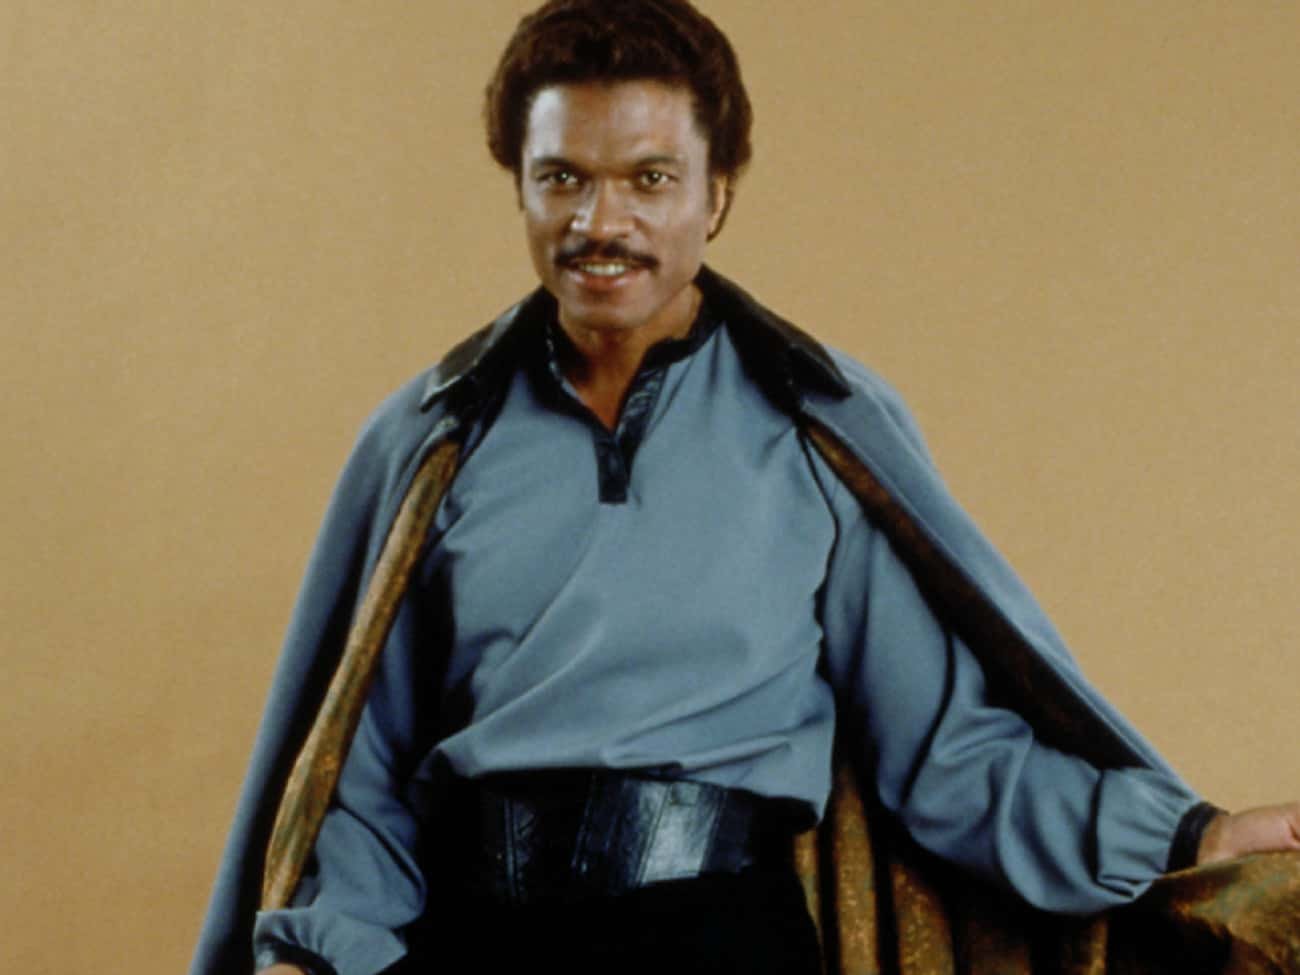 Lando Calrissian is listed (or ranked) 3 on the list Beloved Movie Characters Who Should Make a Comeback